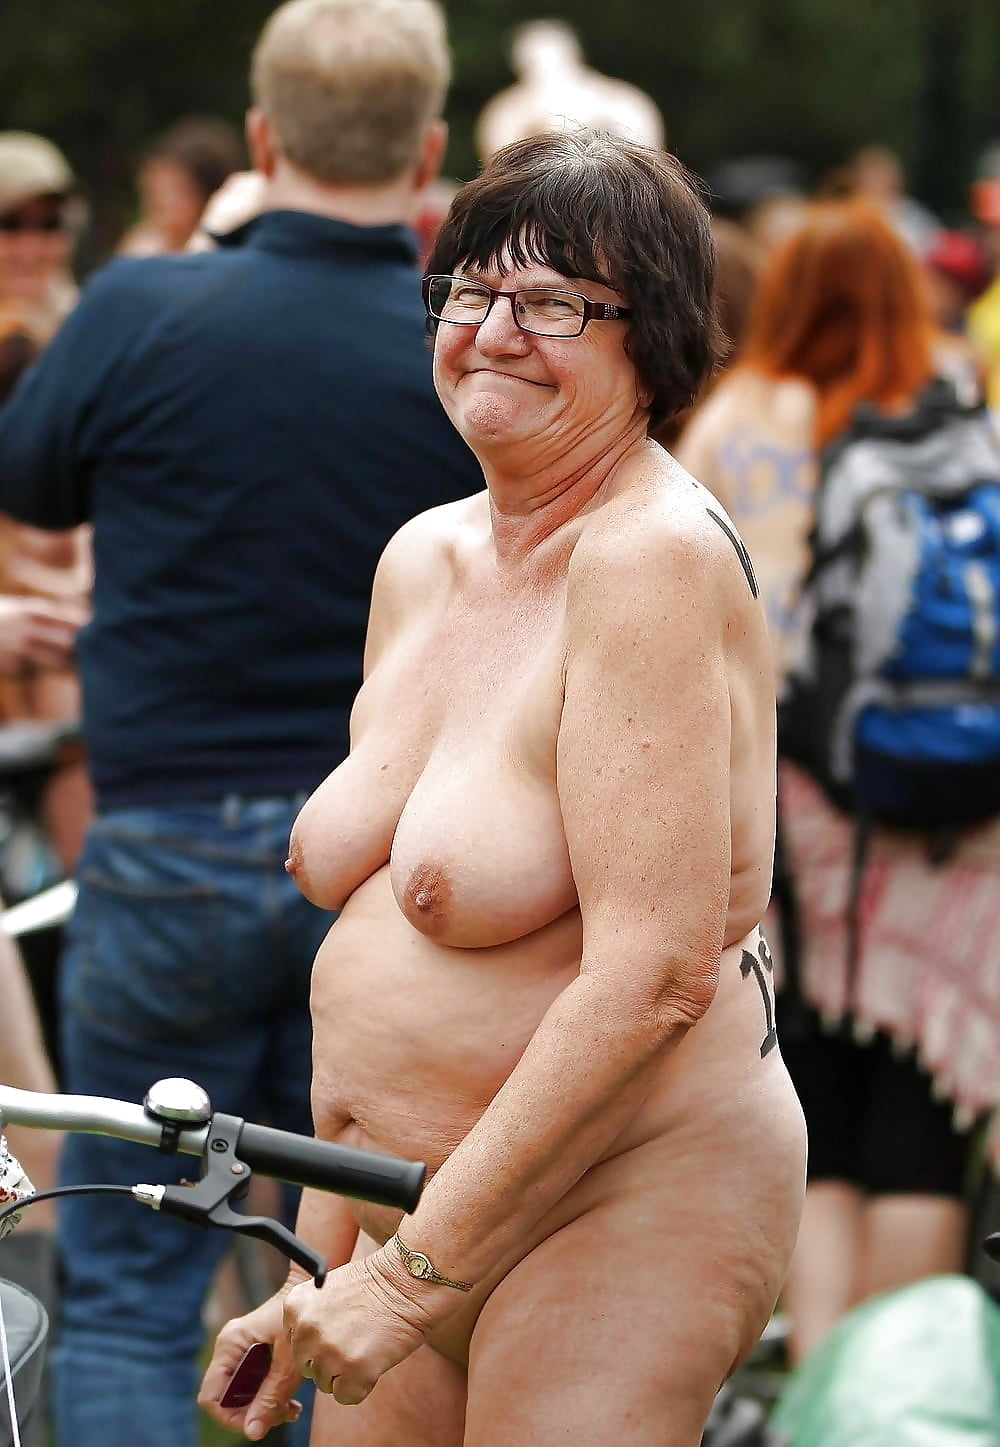 nude-grannies-in-public